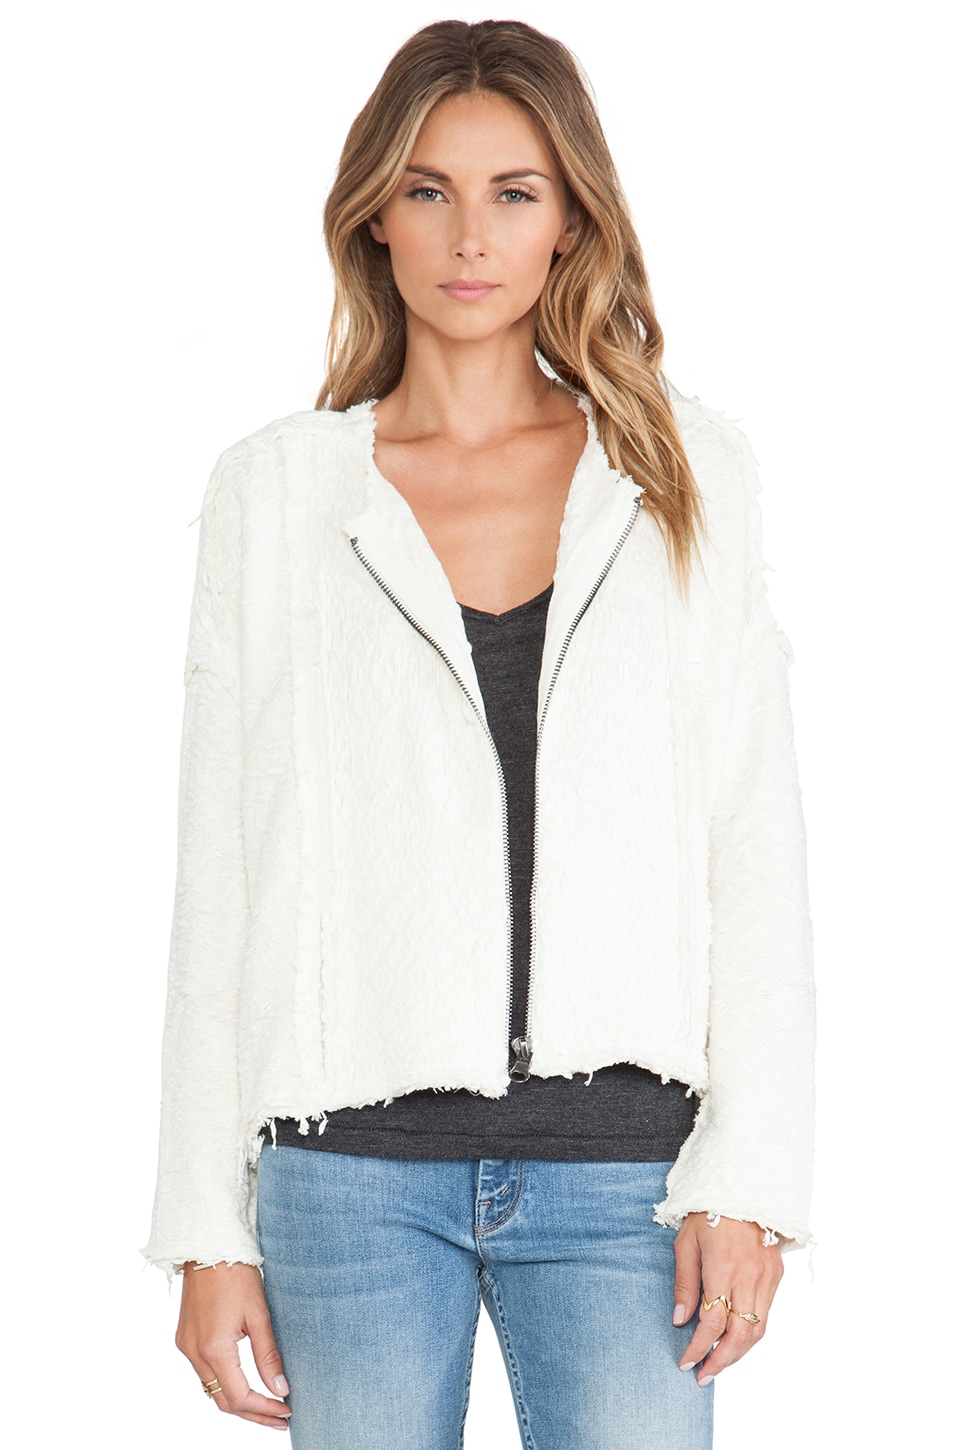 Free People Favorite Crush Cardigan in Ivory Combo